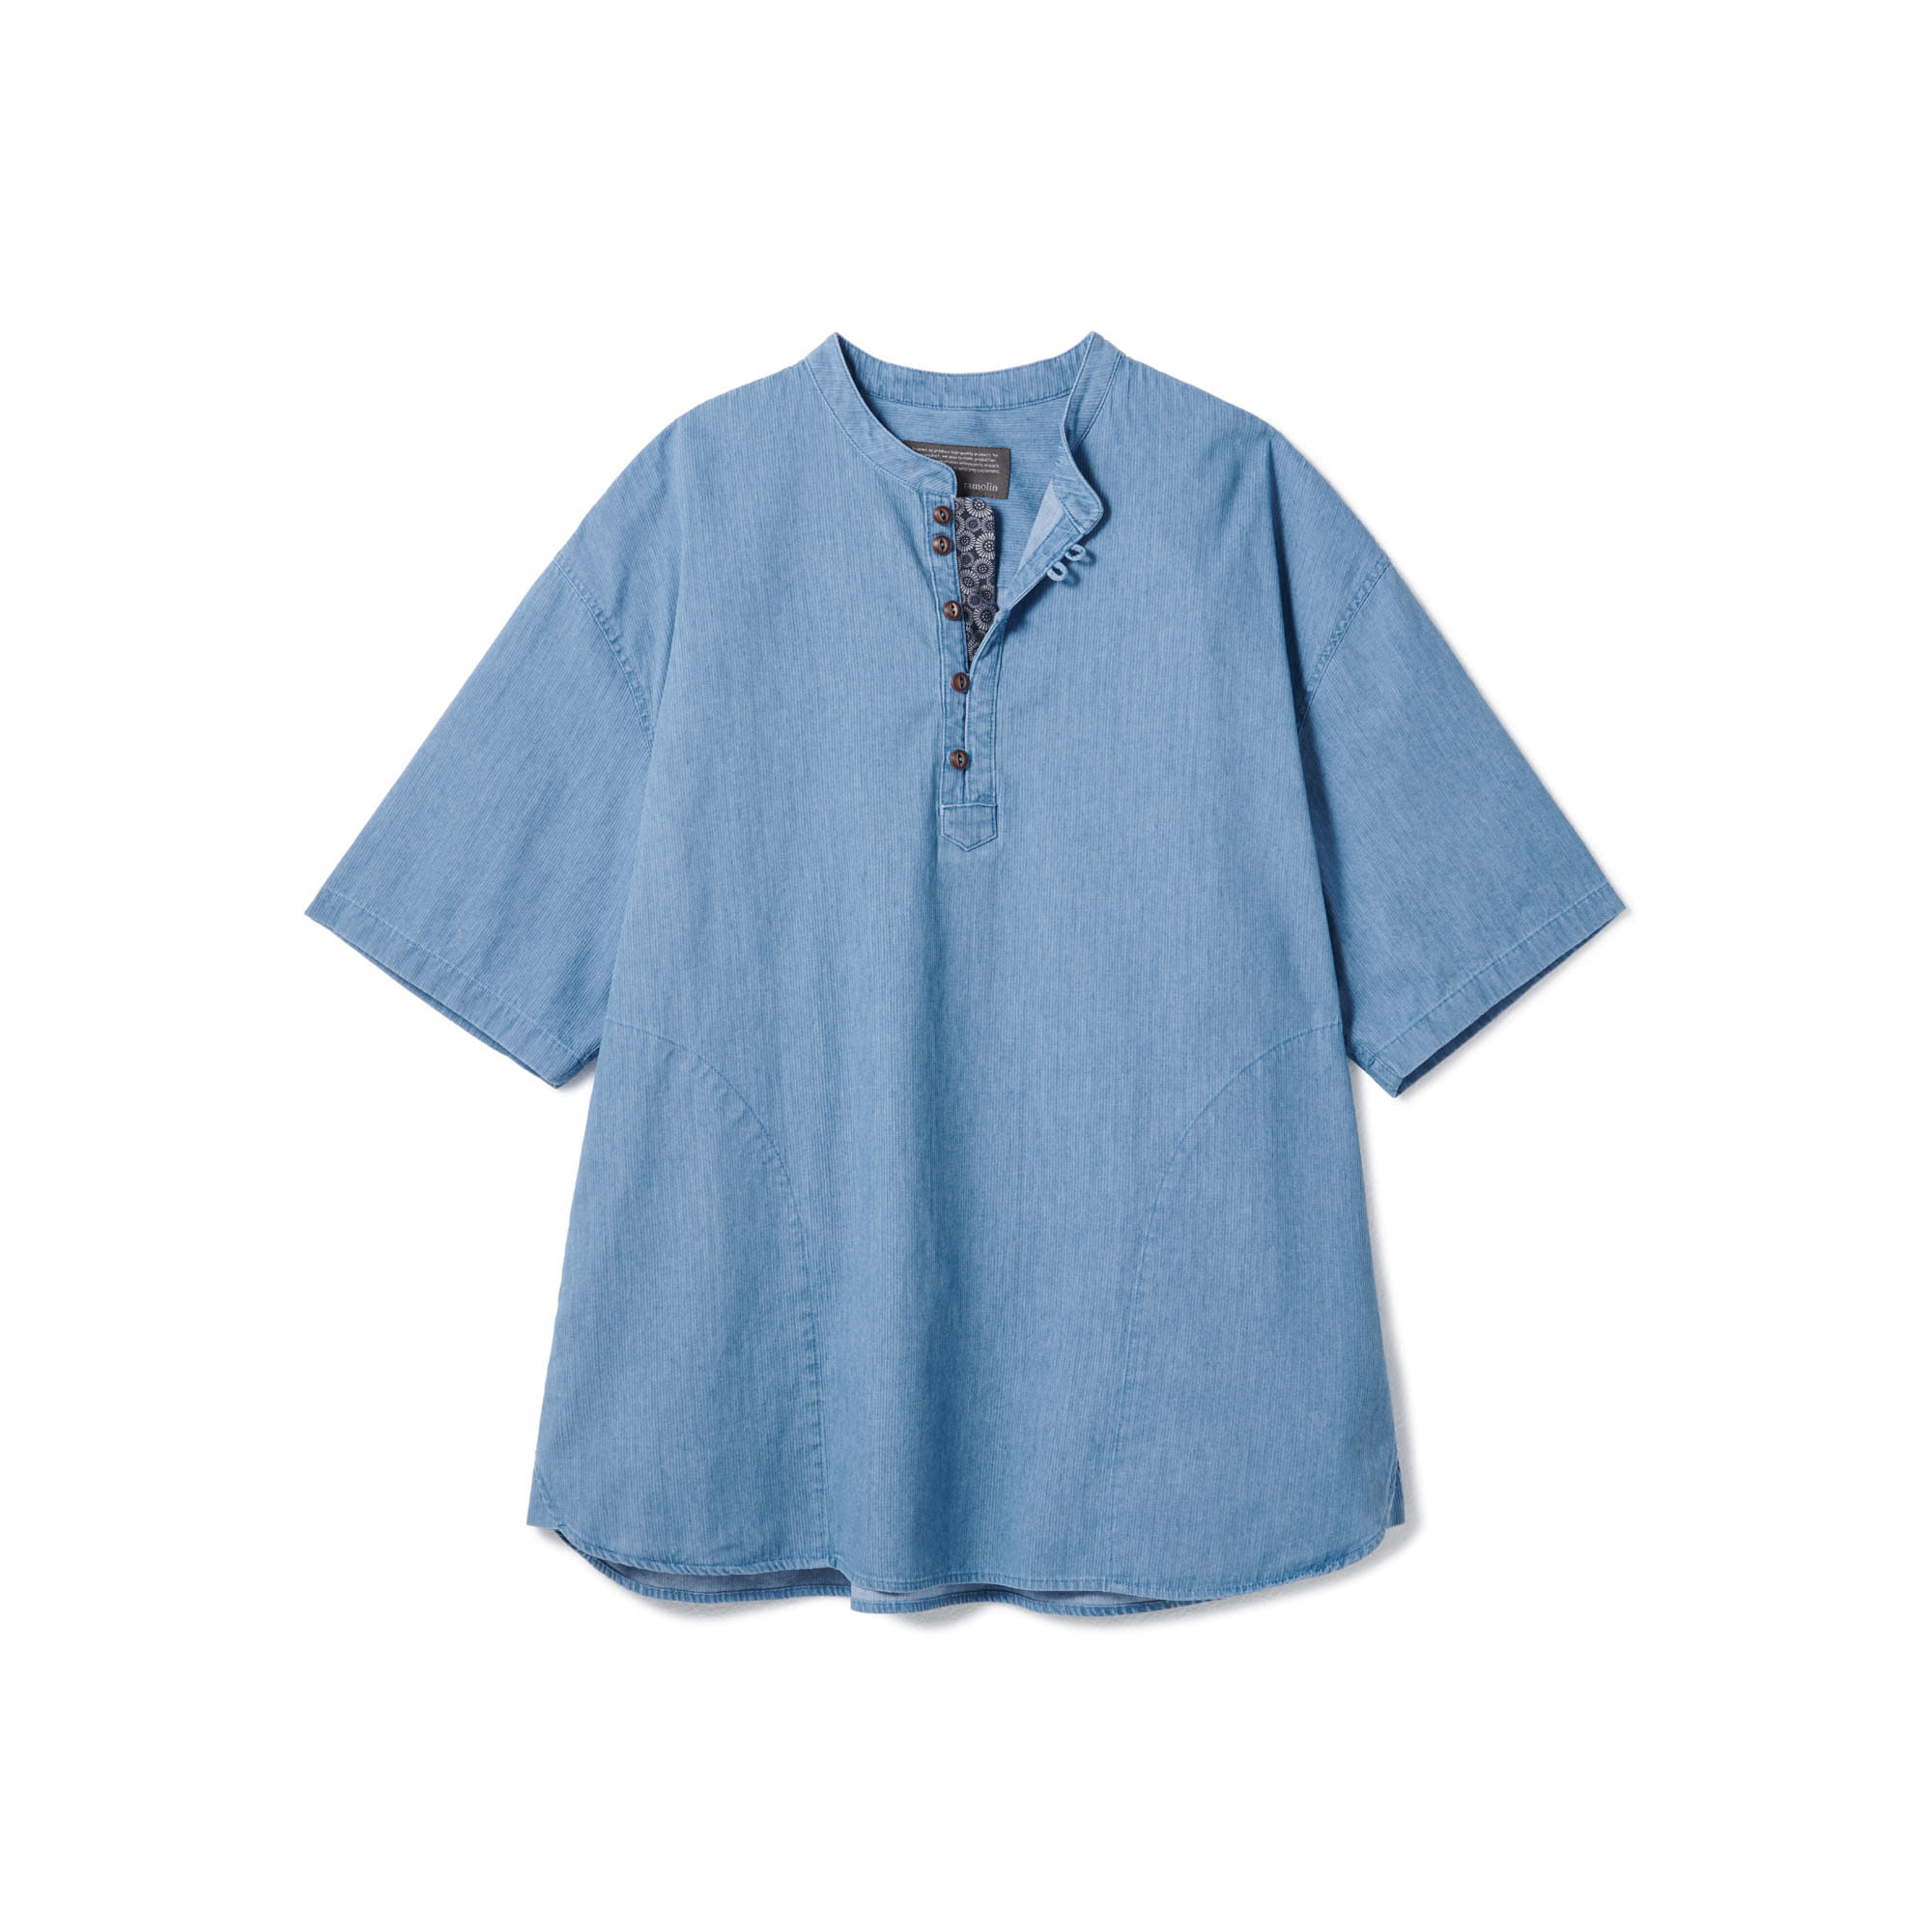 [Restock] Loop Button Washed Half Shirts Light Blue